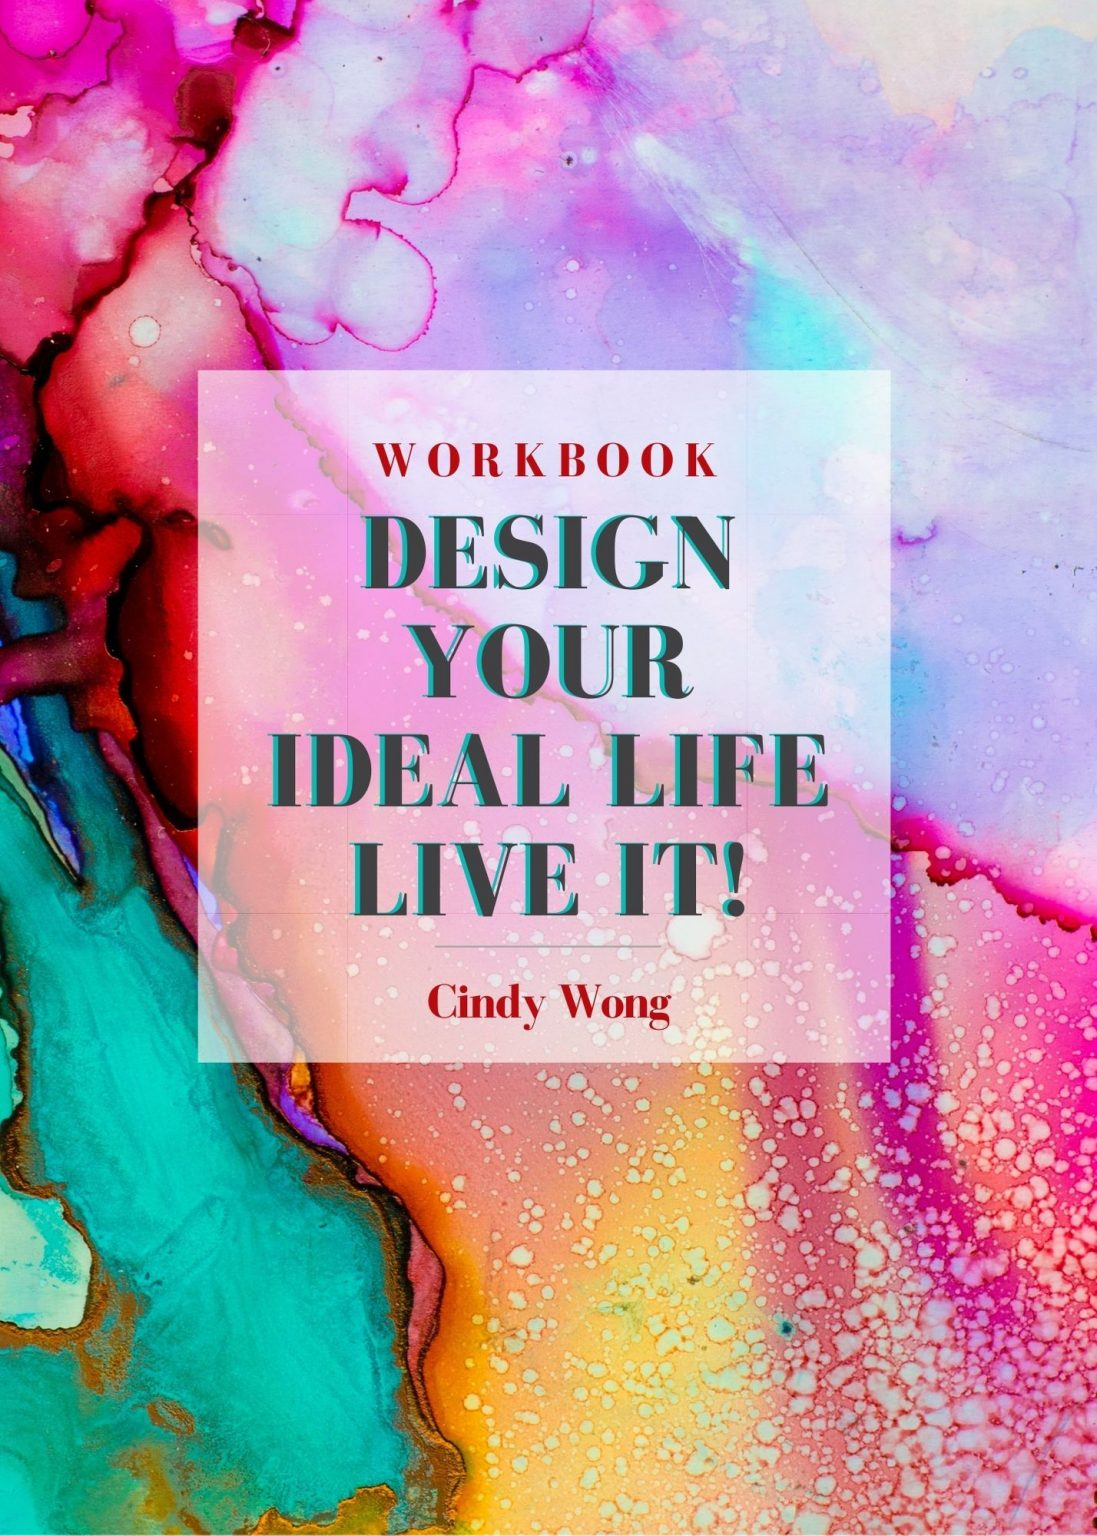 Design Your Ideal Life and Live It